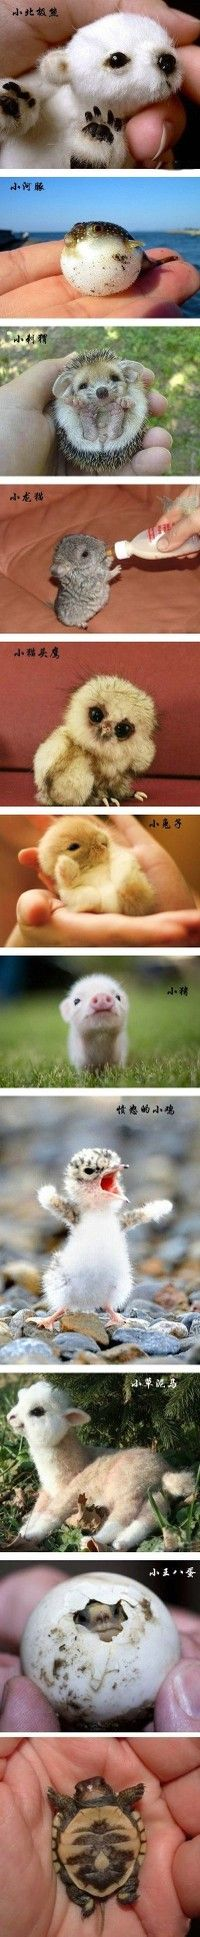 I defy you to still be in a blah mood after looking at these super tiny animals. Even the miniature blowfish is cute.